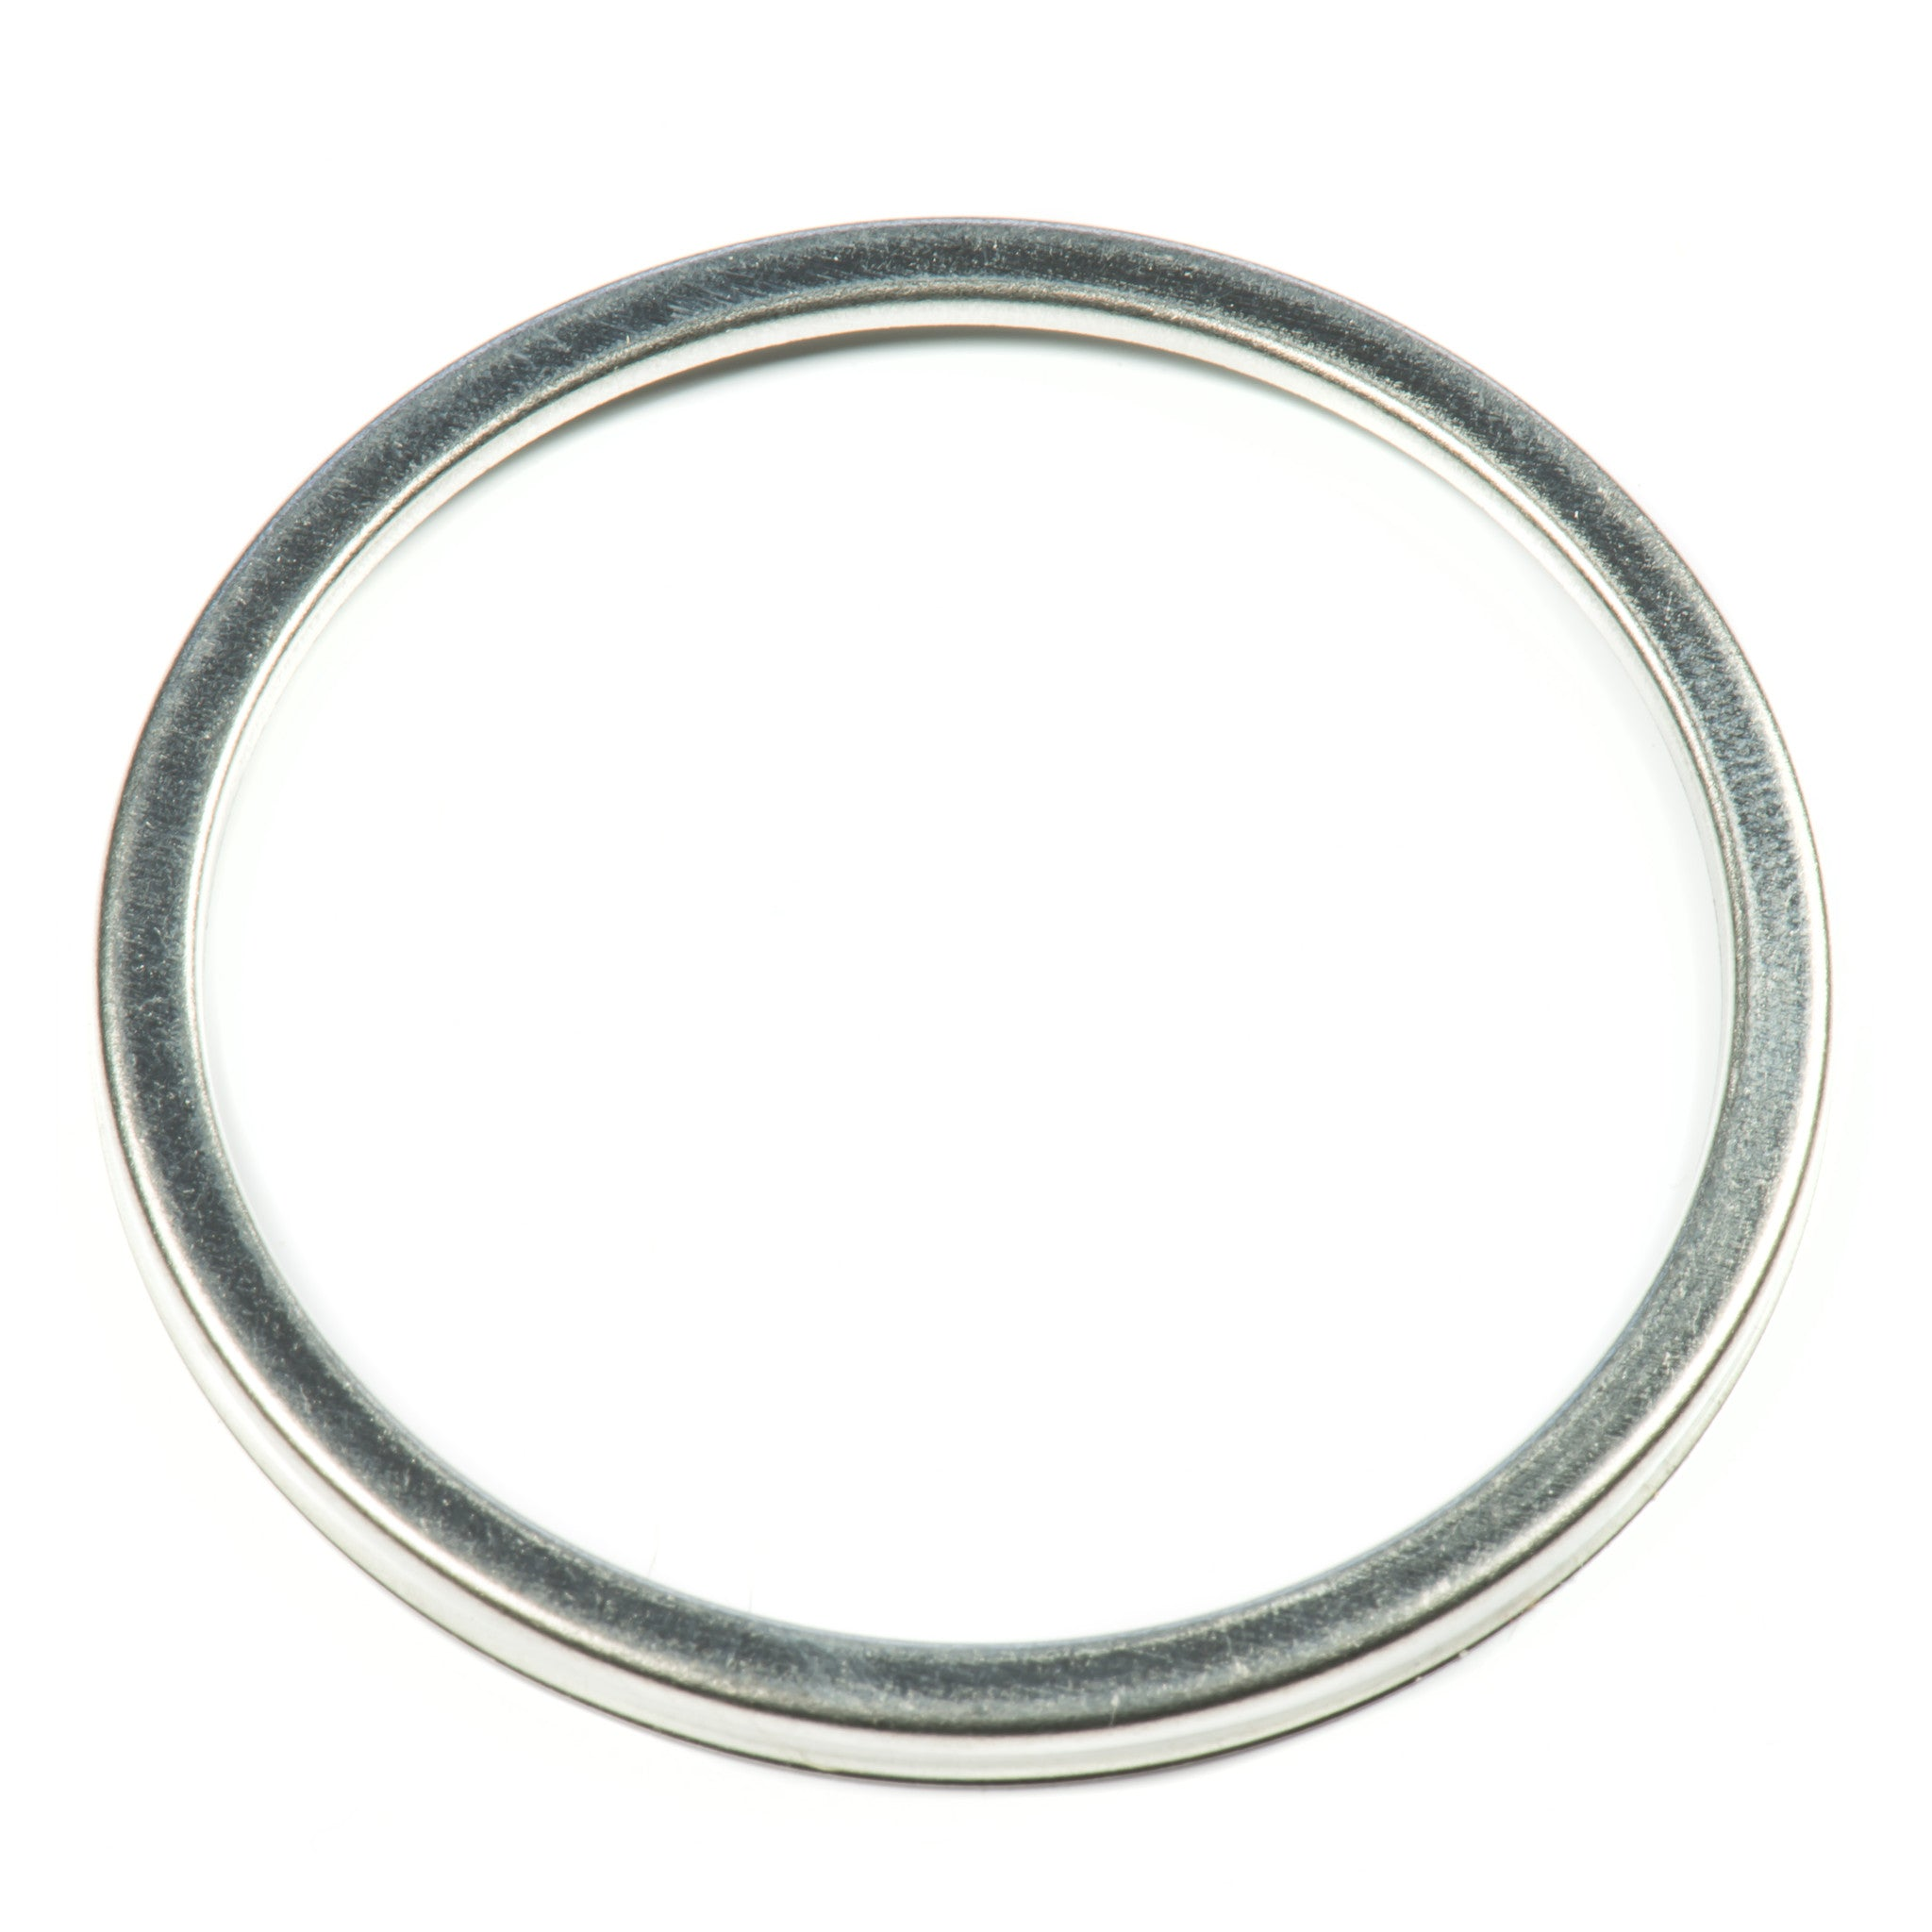 55mm Mirrors Metal Rings - Spares